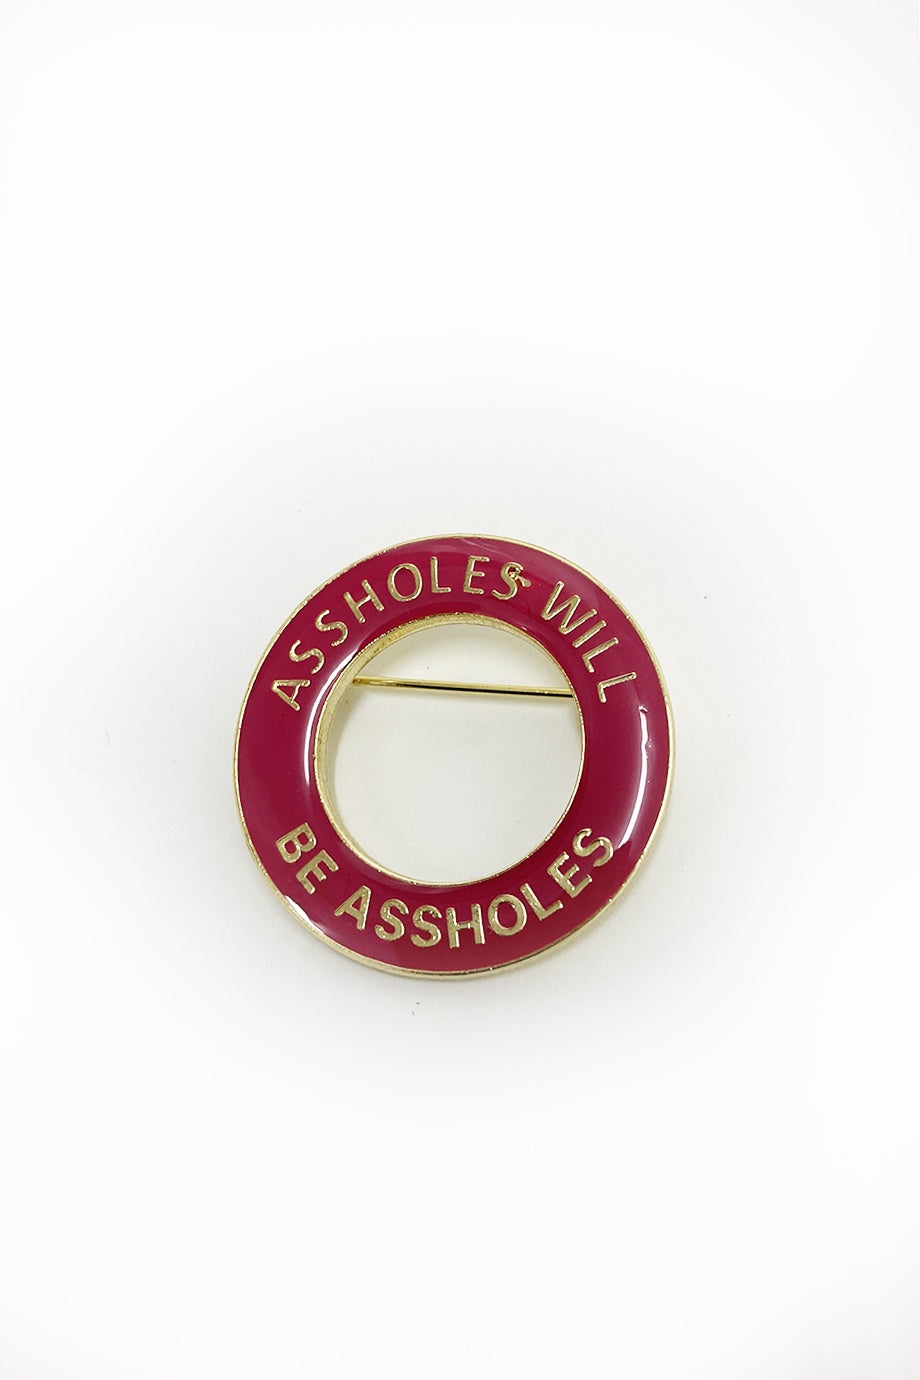 WORLD Enamel Badge - ASSHOLE